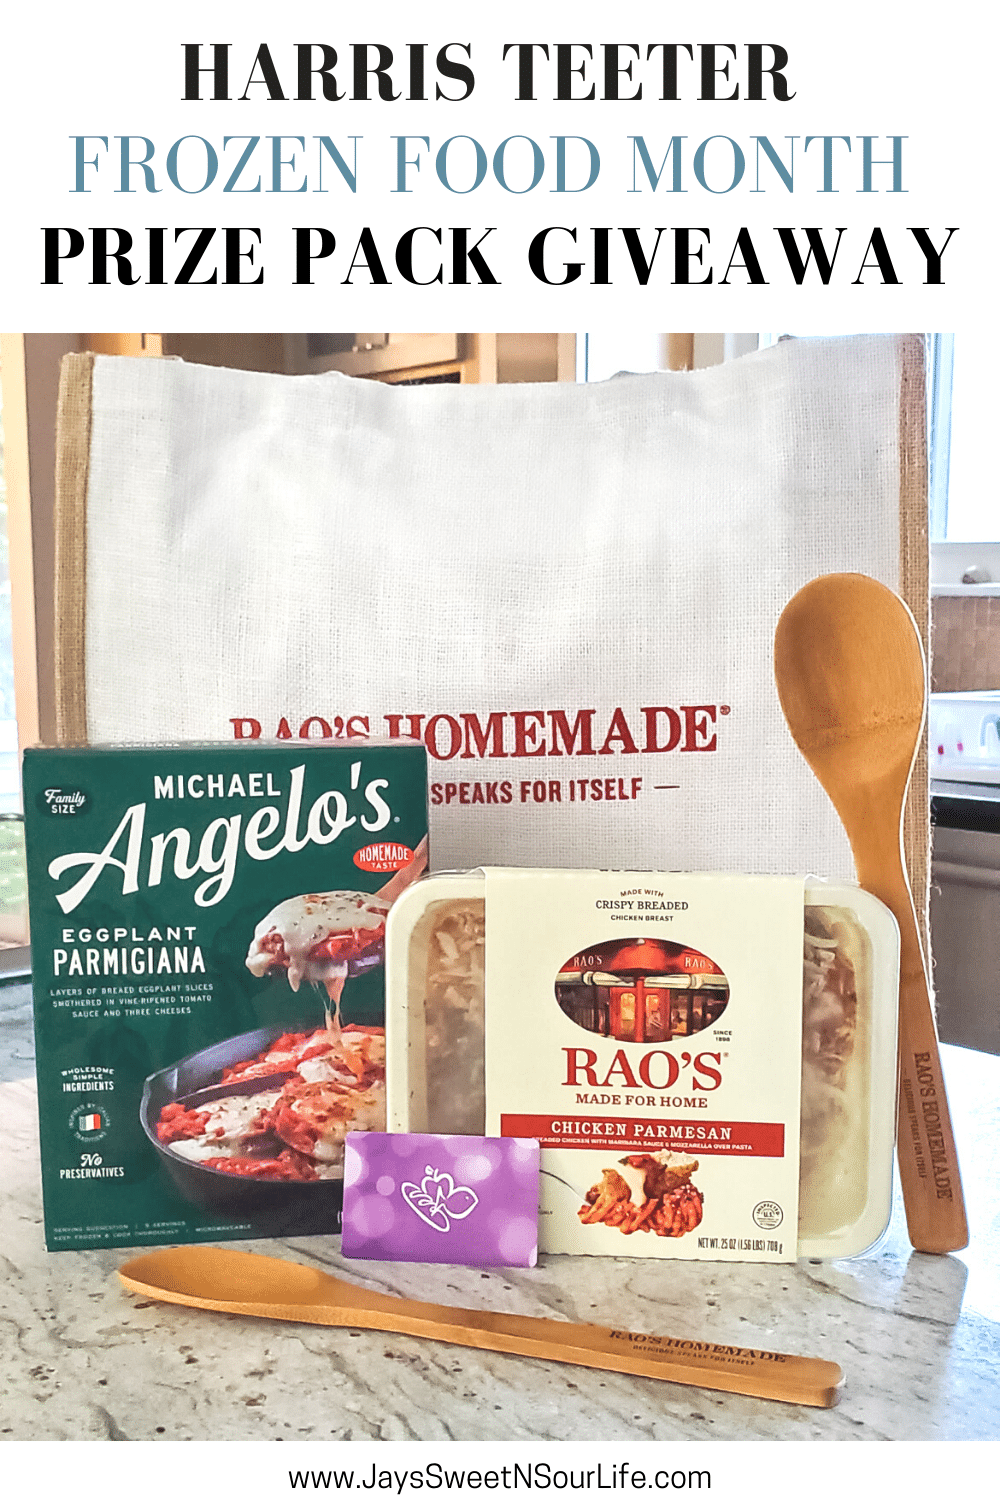 Harris Teeter Frozen Food Month Prize Pack Giveaway. March is National Frozen Food Month and what better way to celebrate it by shopping for your favorite frozen food brands at your local Harris Teeter. Enter to win an awesome prize pack which includes prizes from Michael Angelo's. Rao's and a Harris Teeter Gift Card.